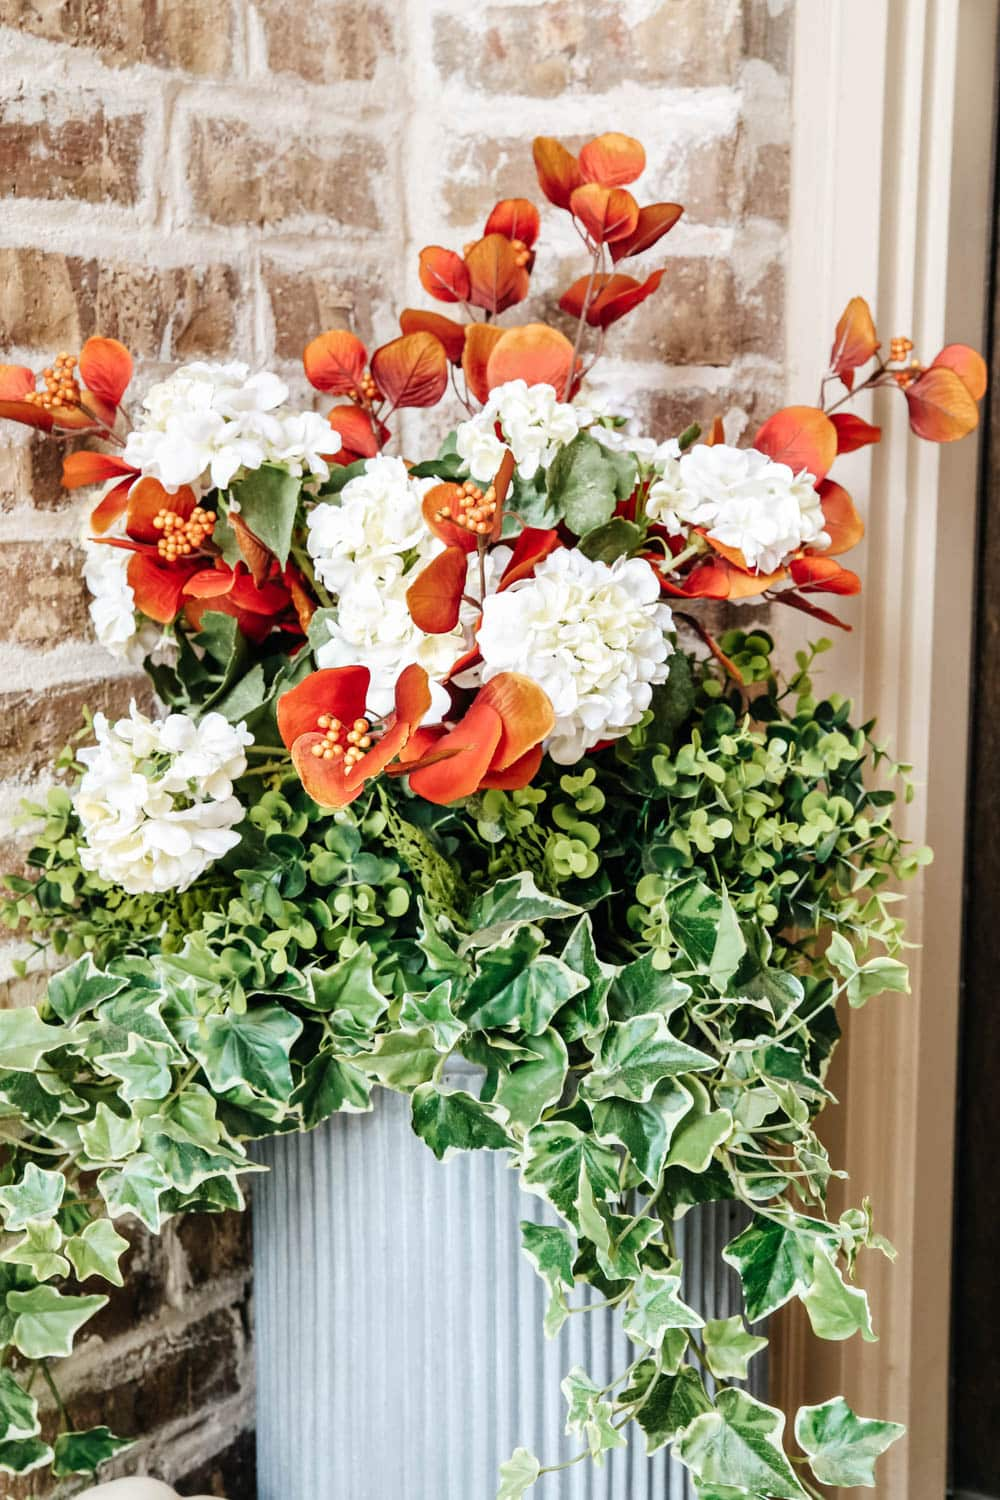 Switch out the flowers in your planters to coordinate with your fall wreath. #ABlissfulNest #fallporch